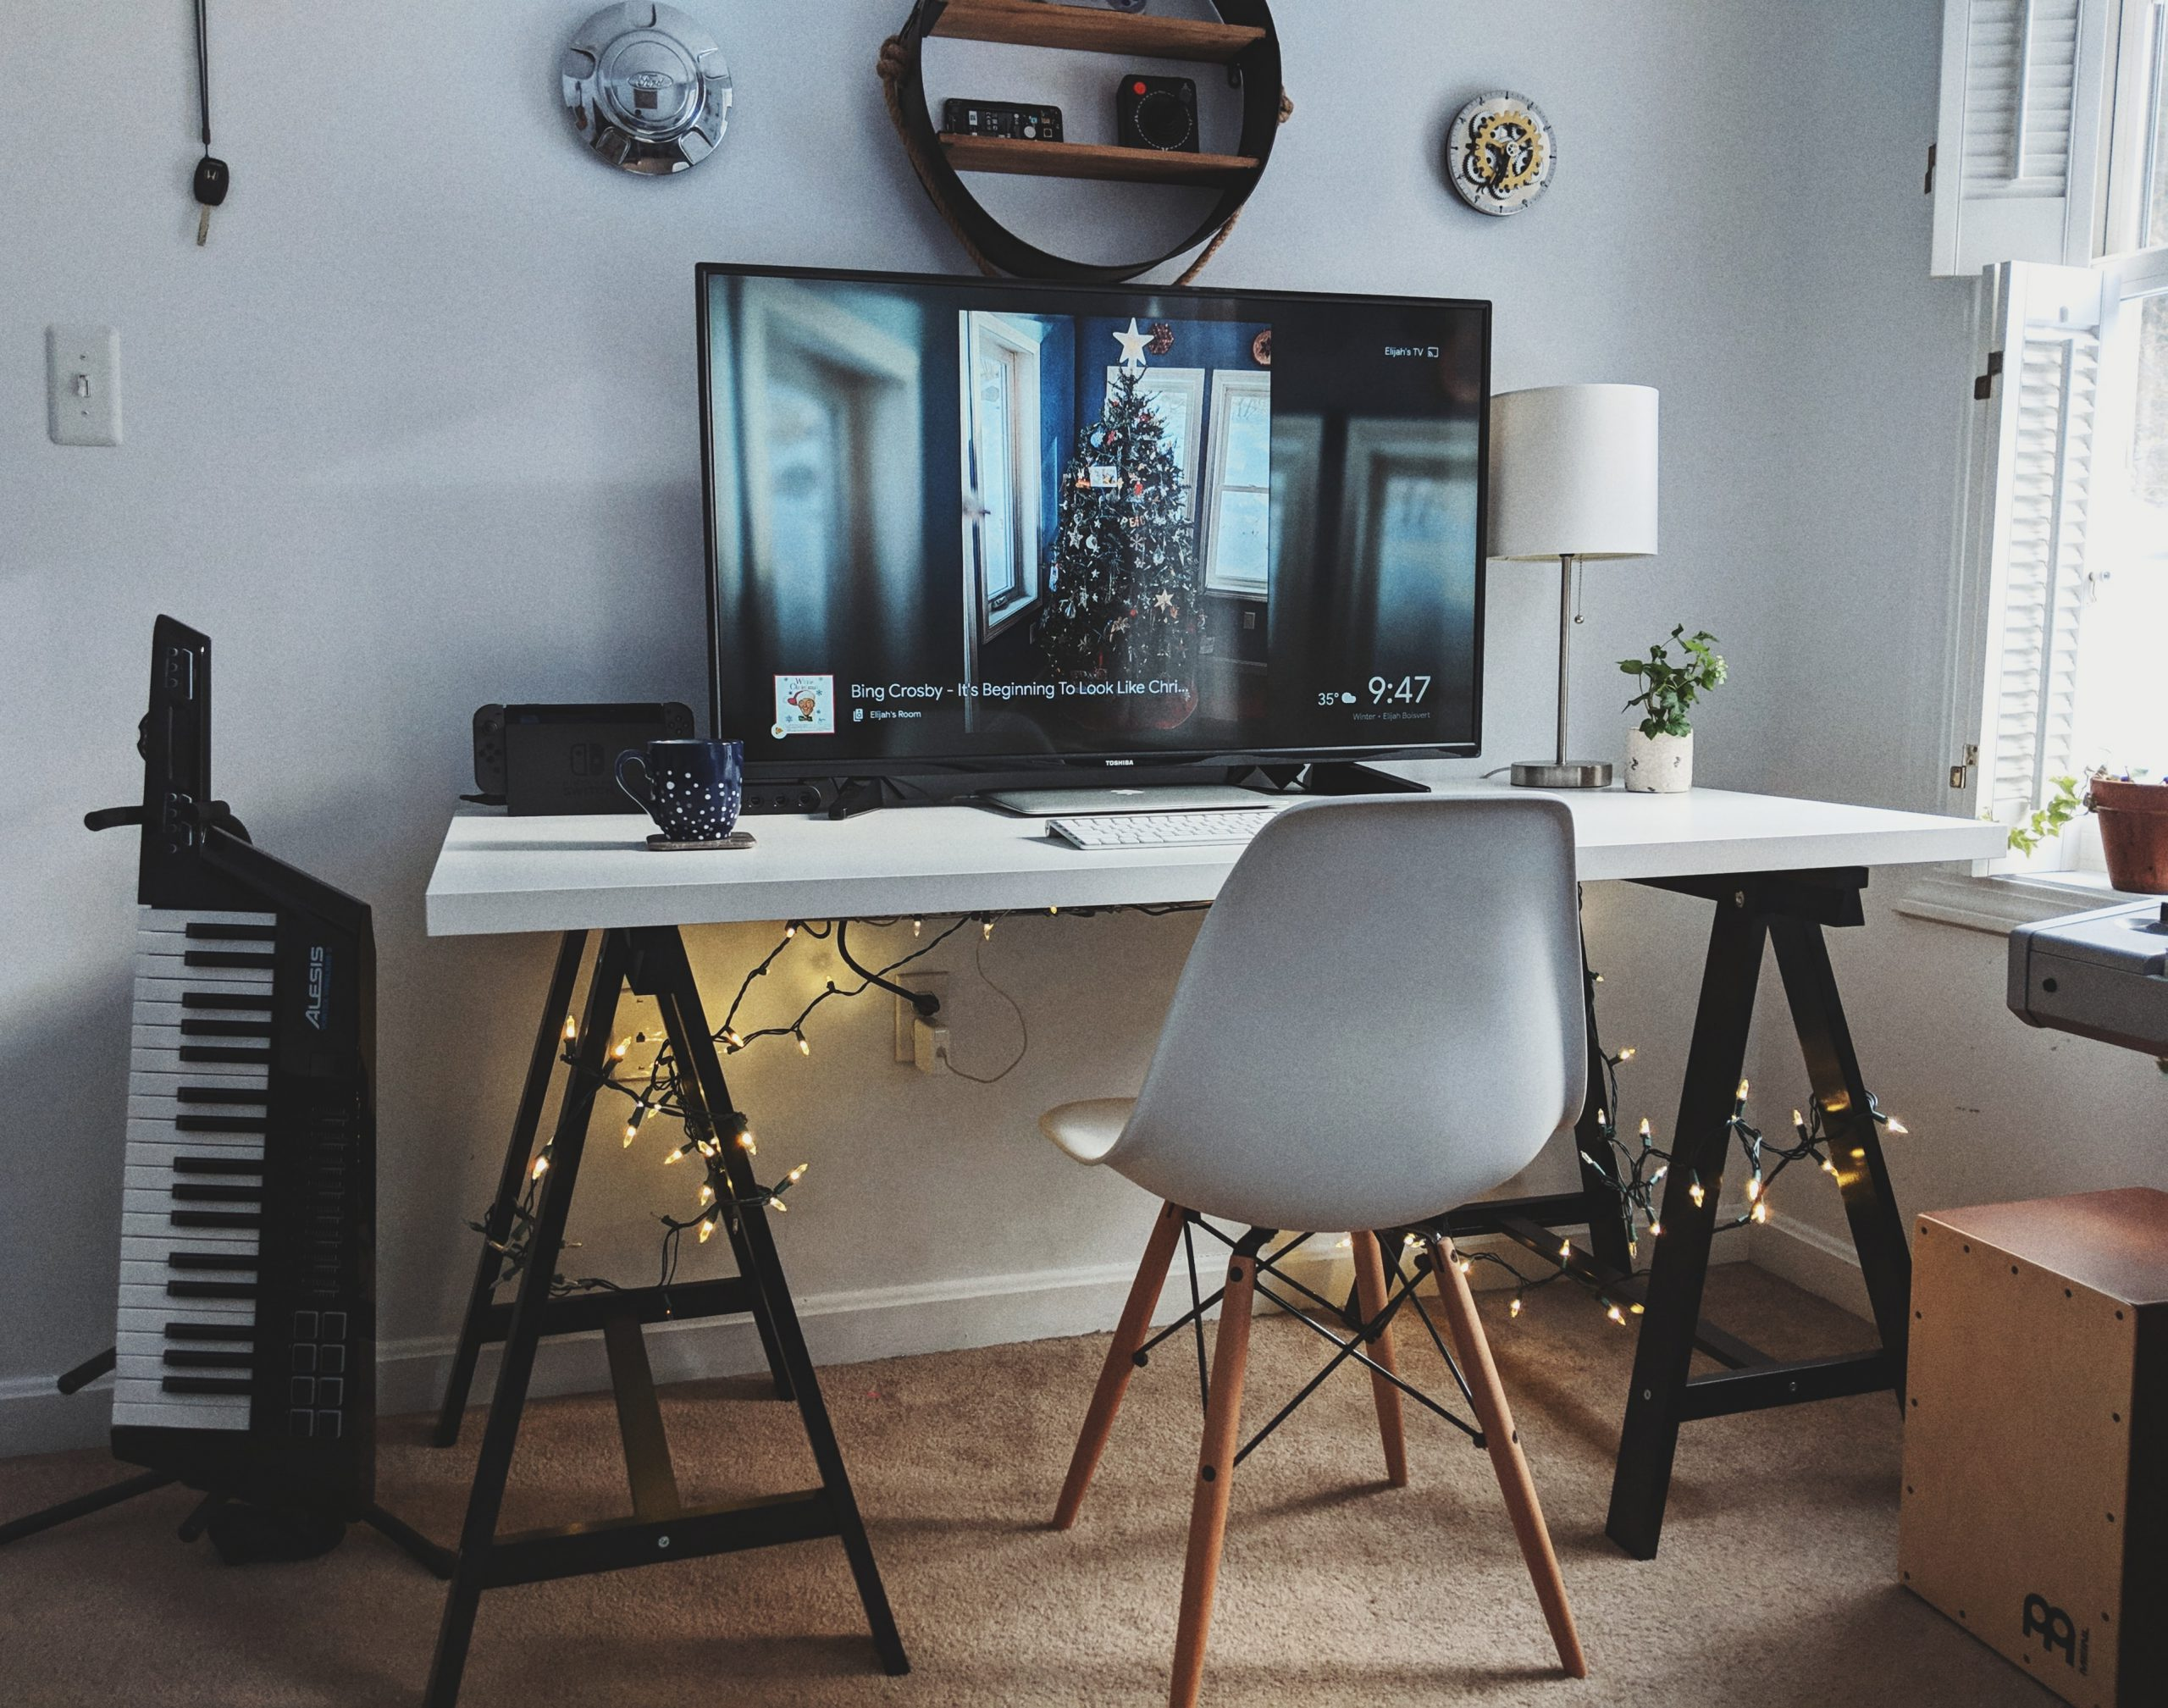 Home Office Desk at Christmas Time